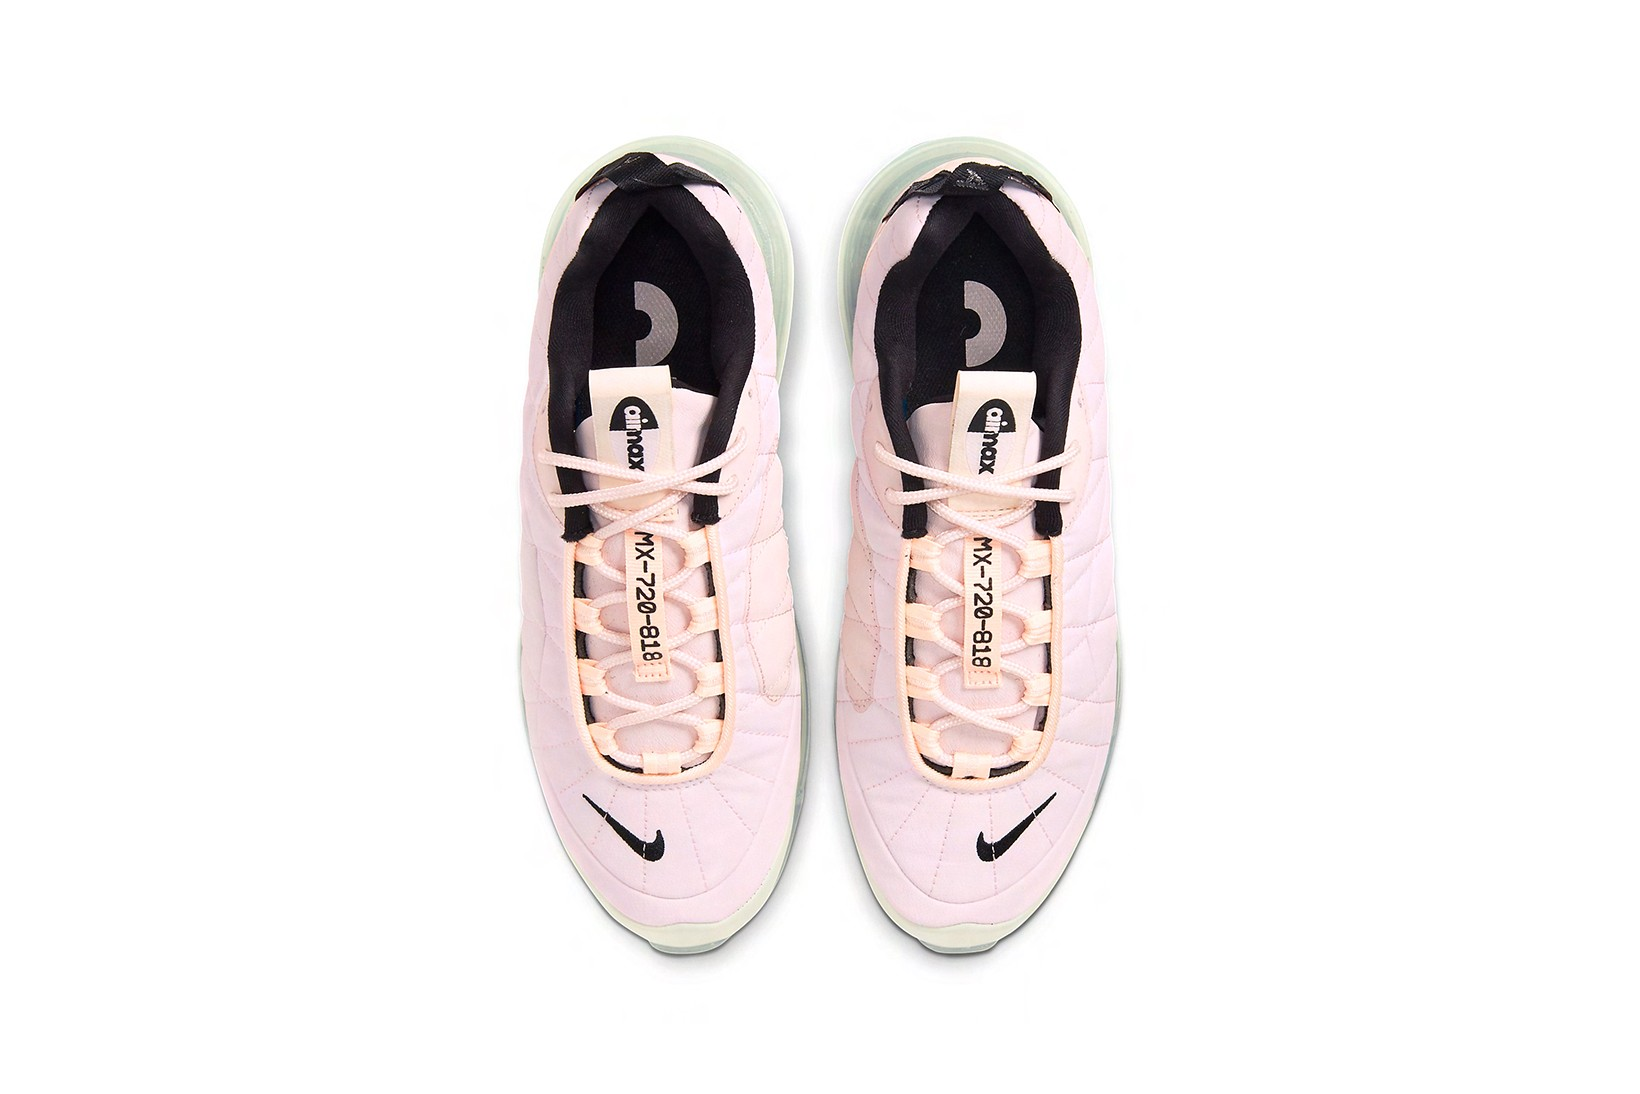 Nike MX 720-818 Arrives in Quilted Pink